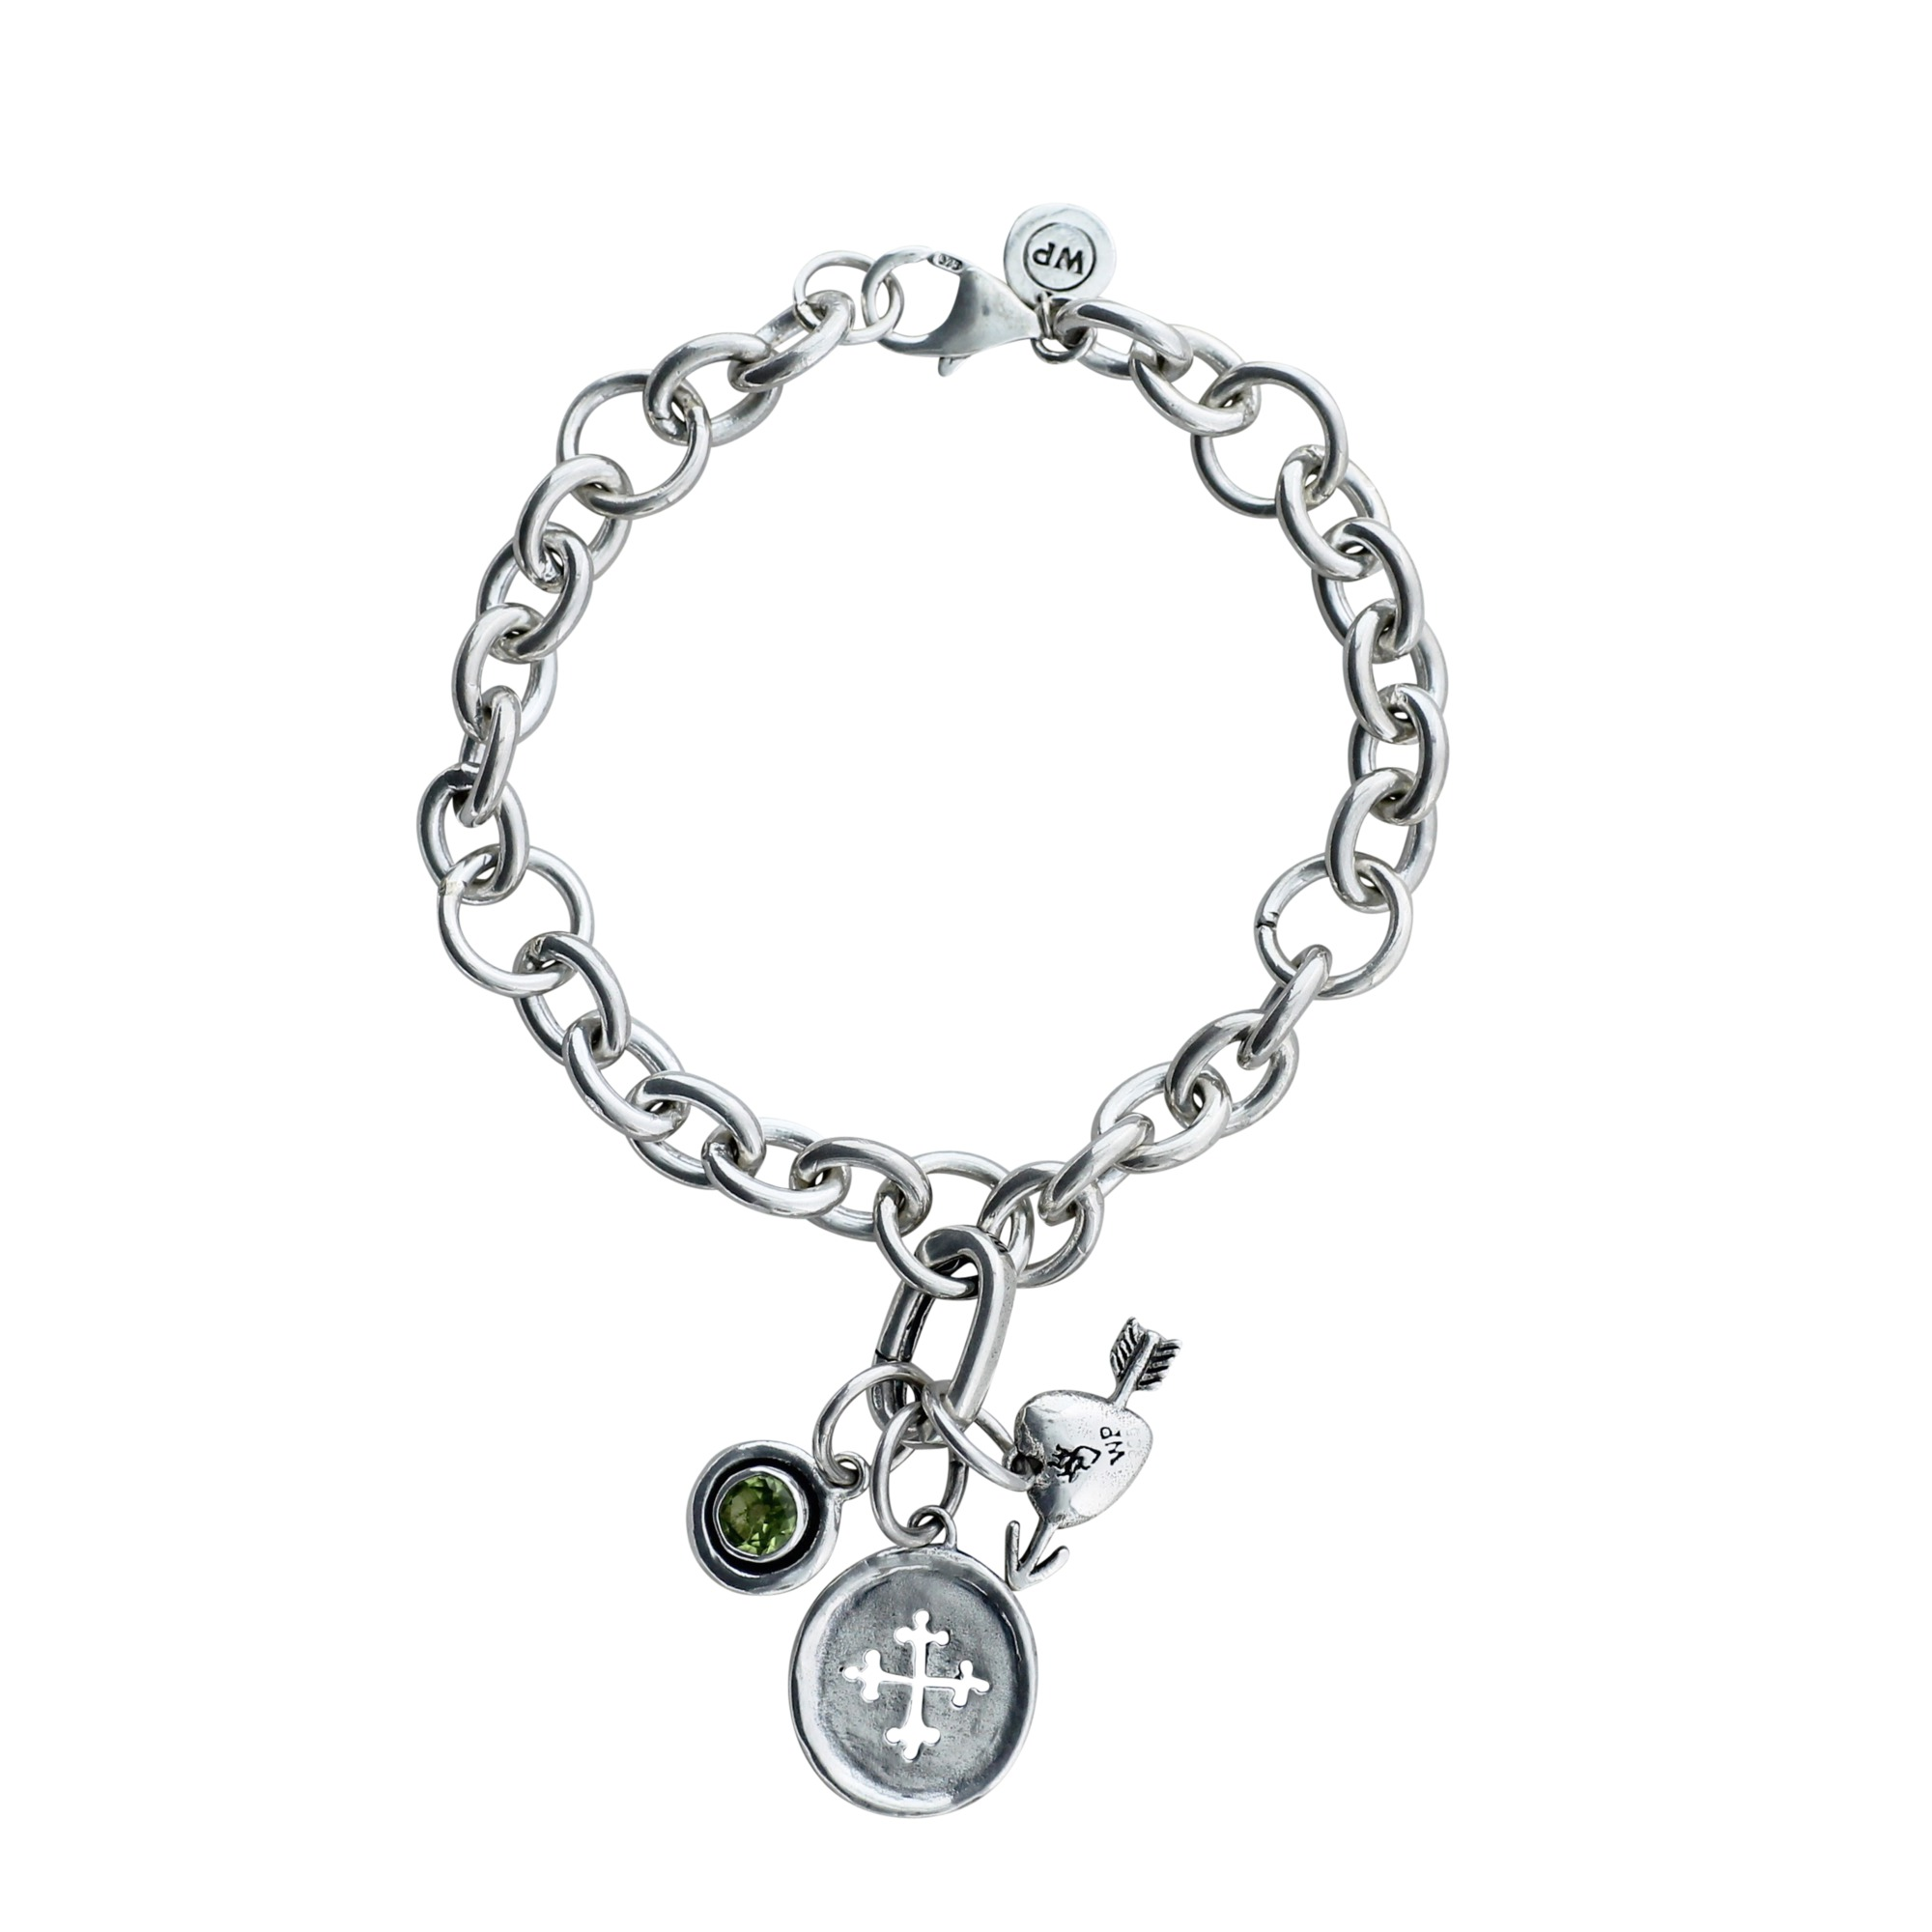 Cable Bracelet with Cross & Heart Charms